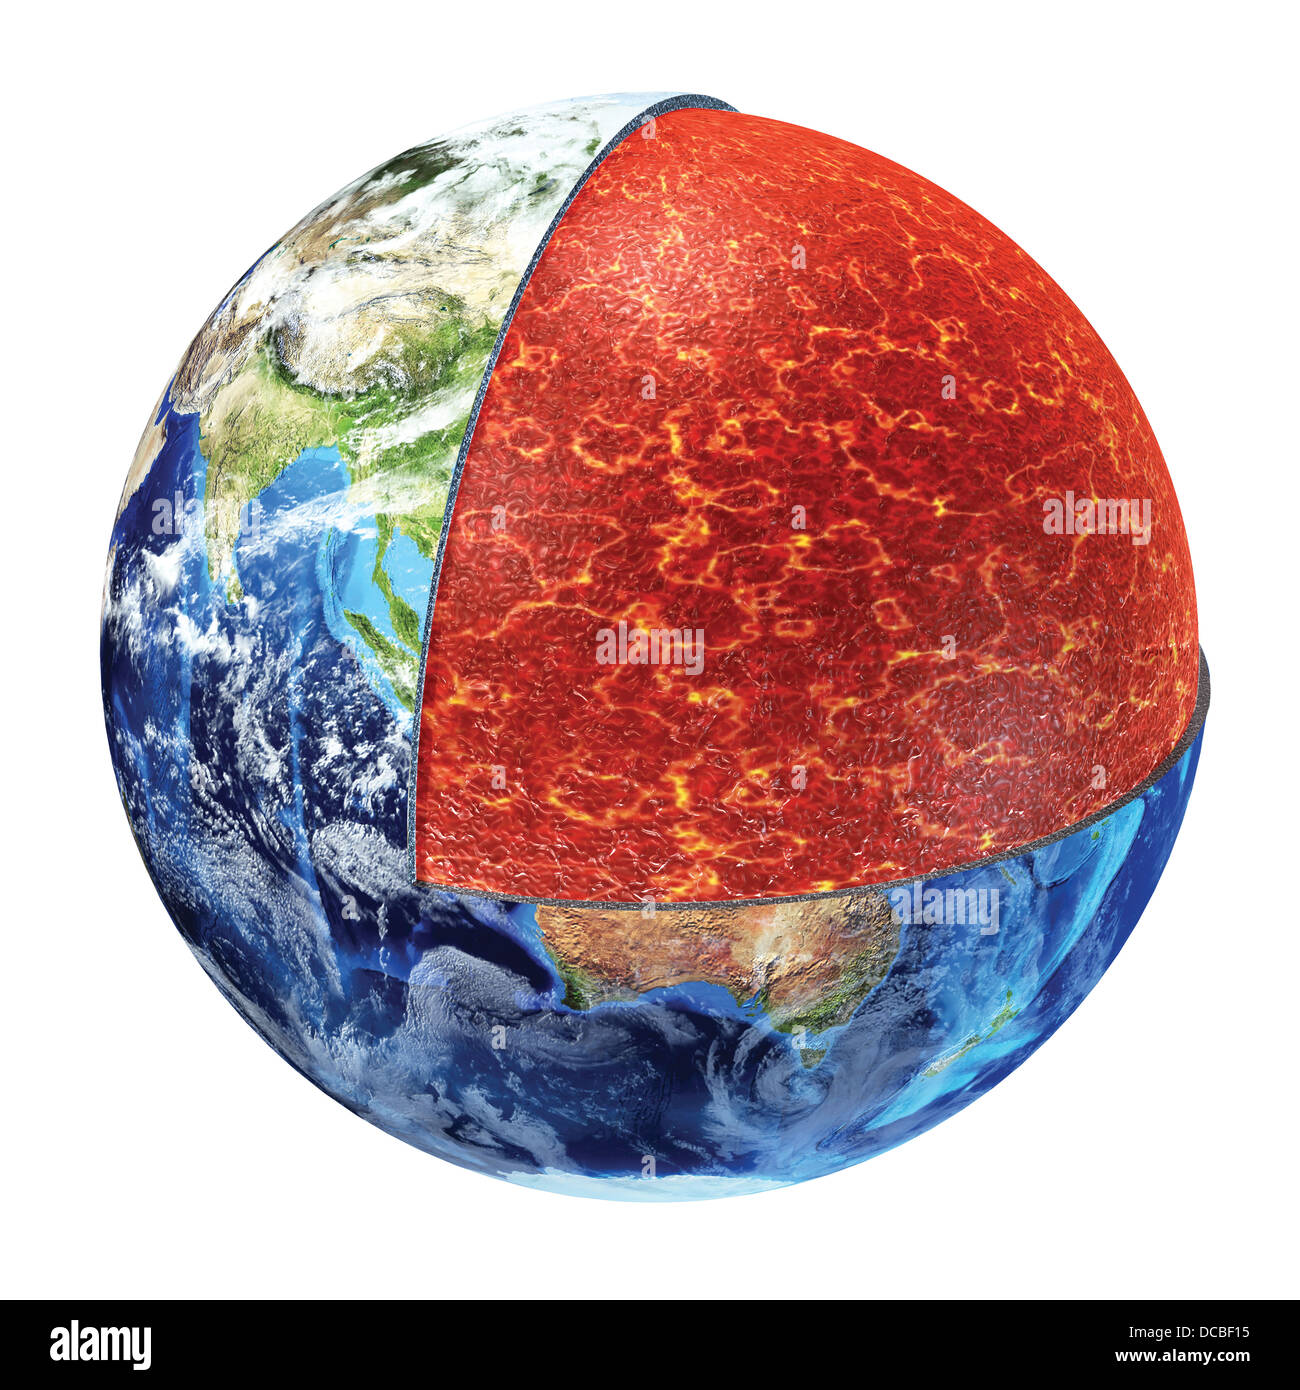 Earth Cross Section Showing The Upper Mantle Made By